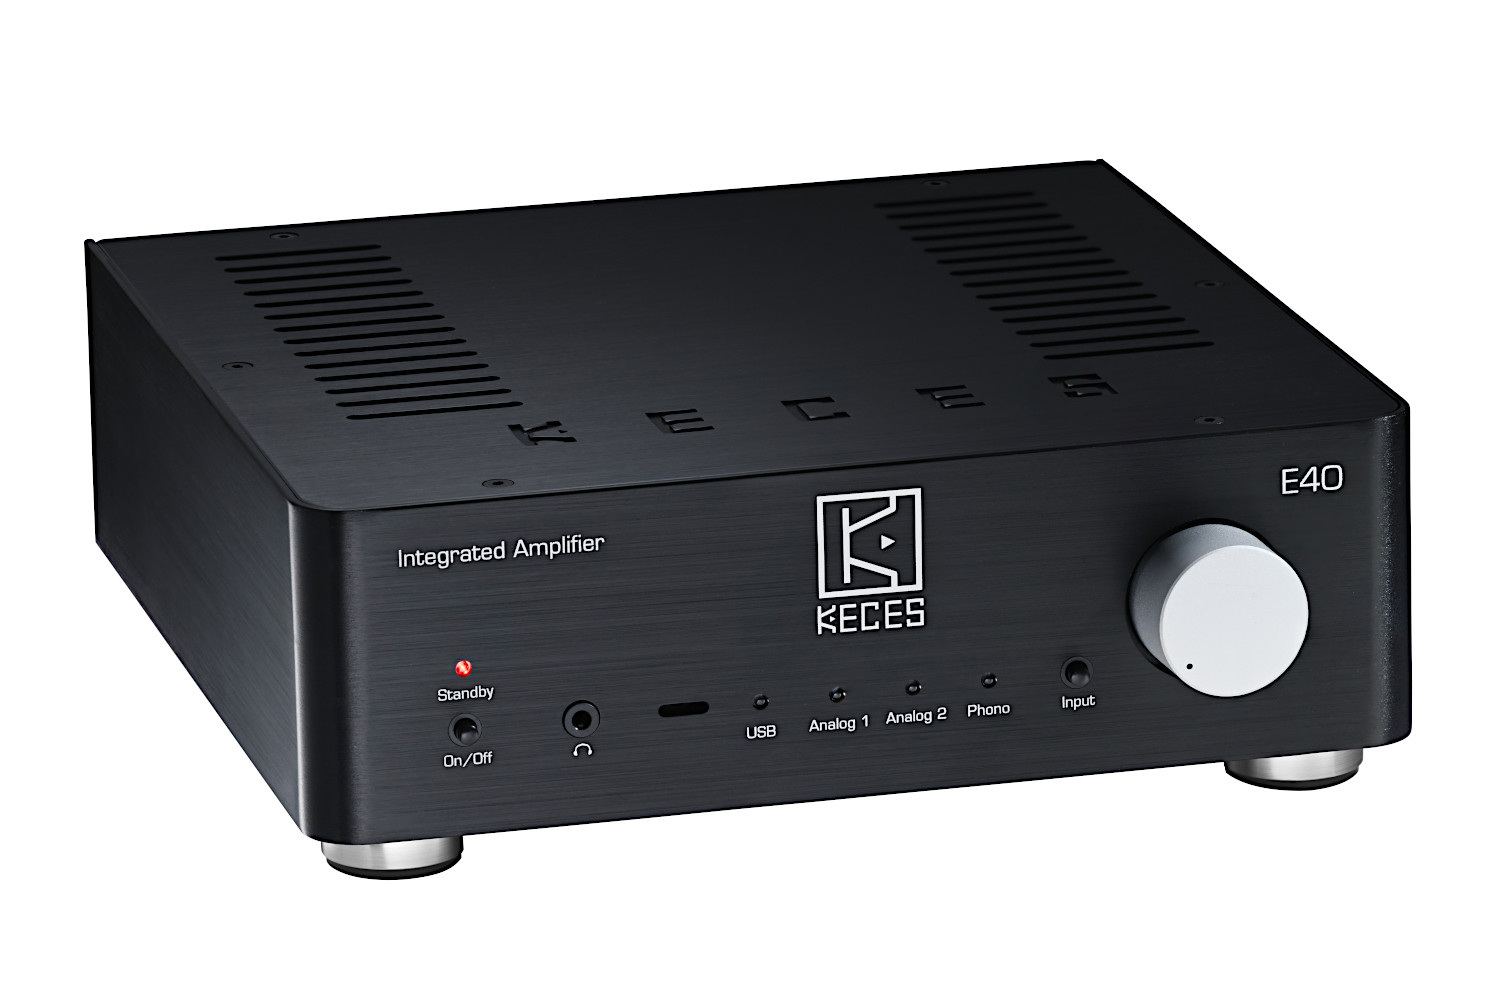 Keces E40 Integrated Amplifier